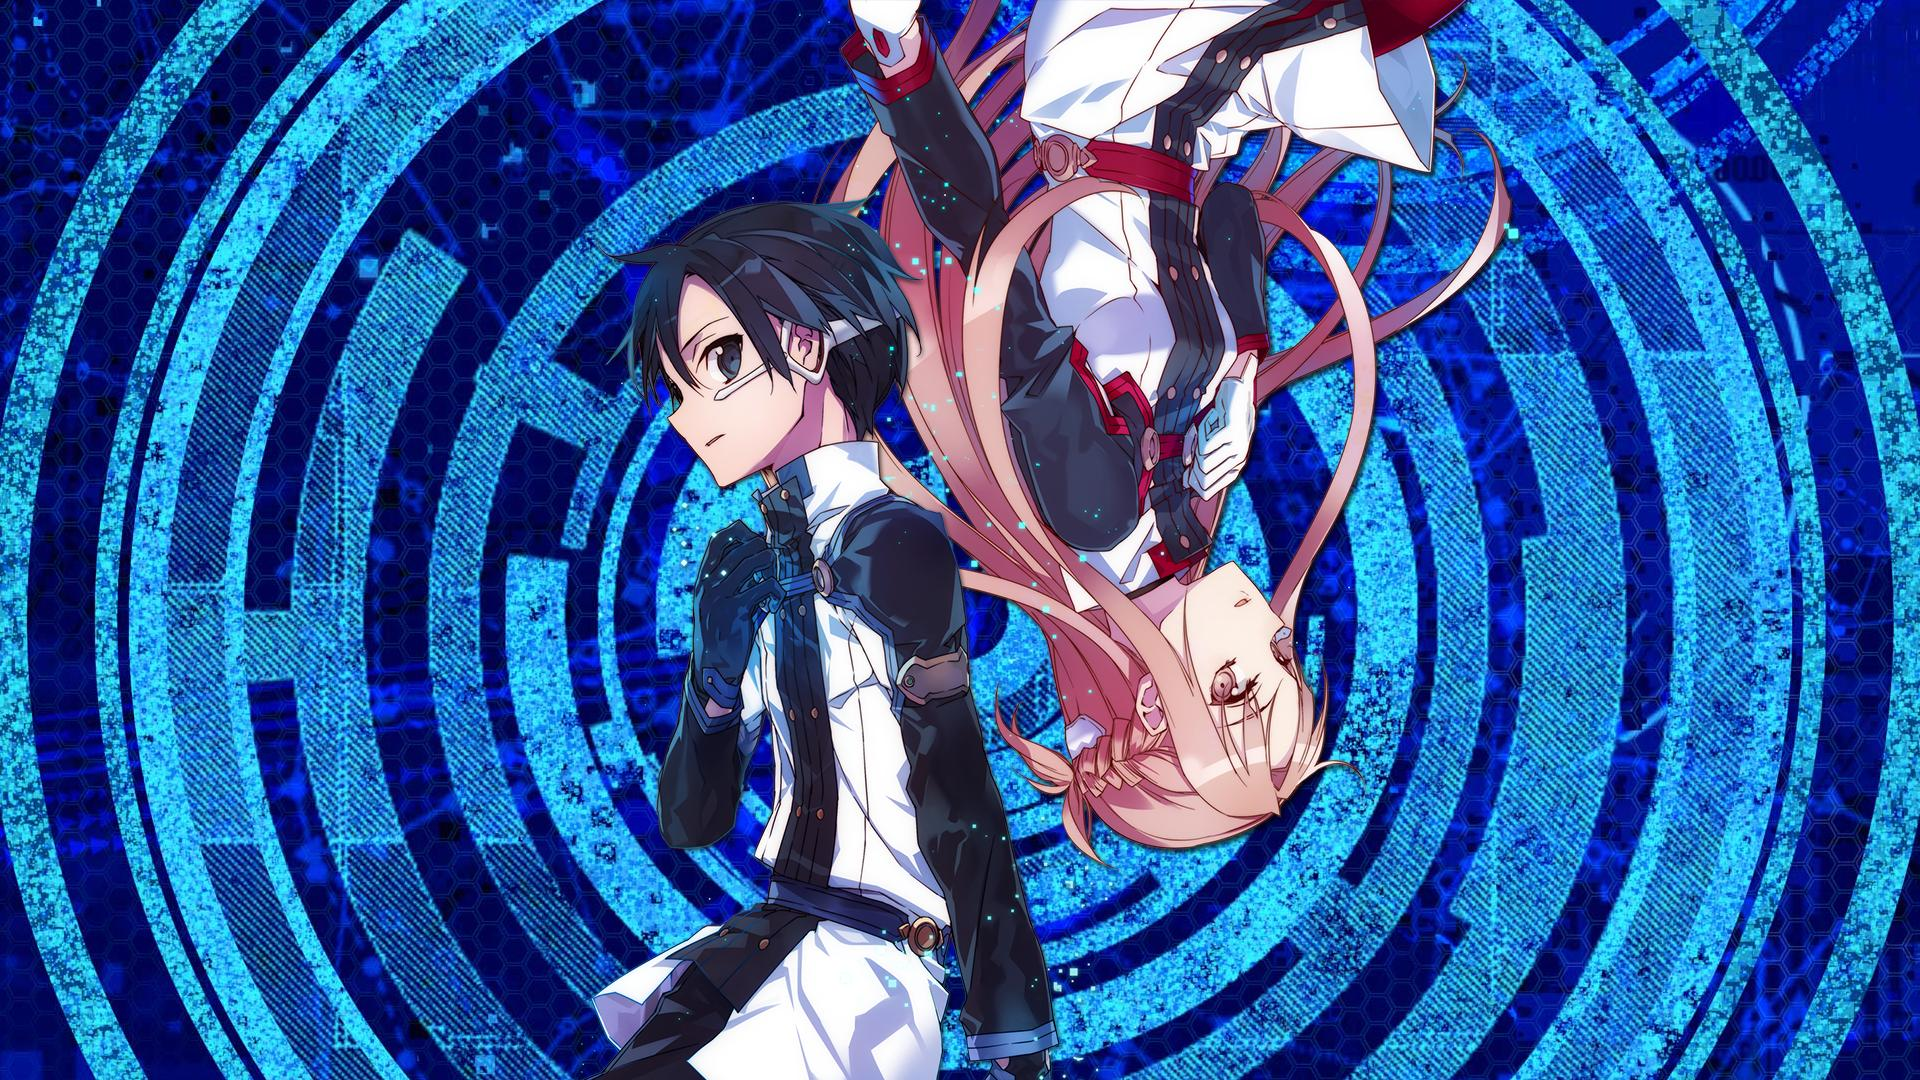 sword art online movie - photo #18